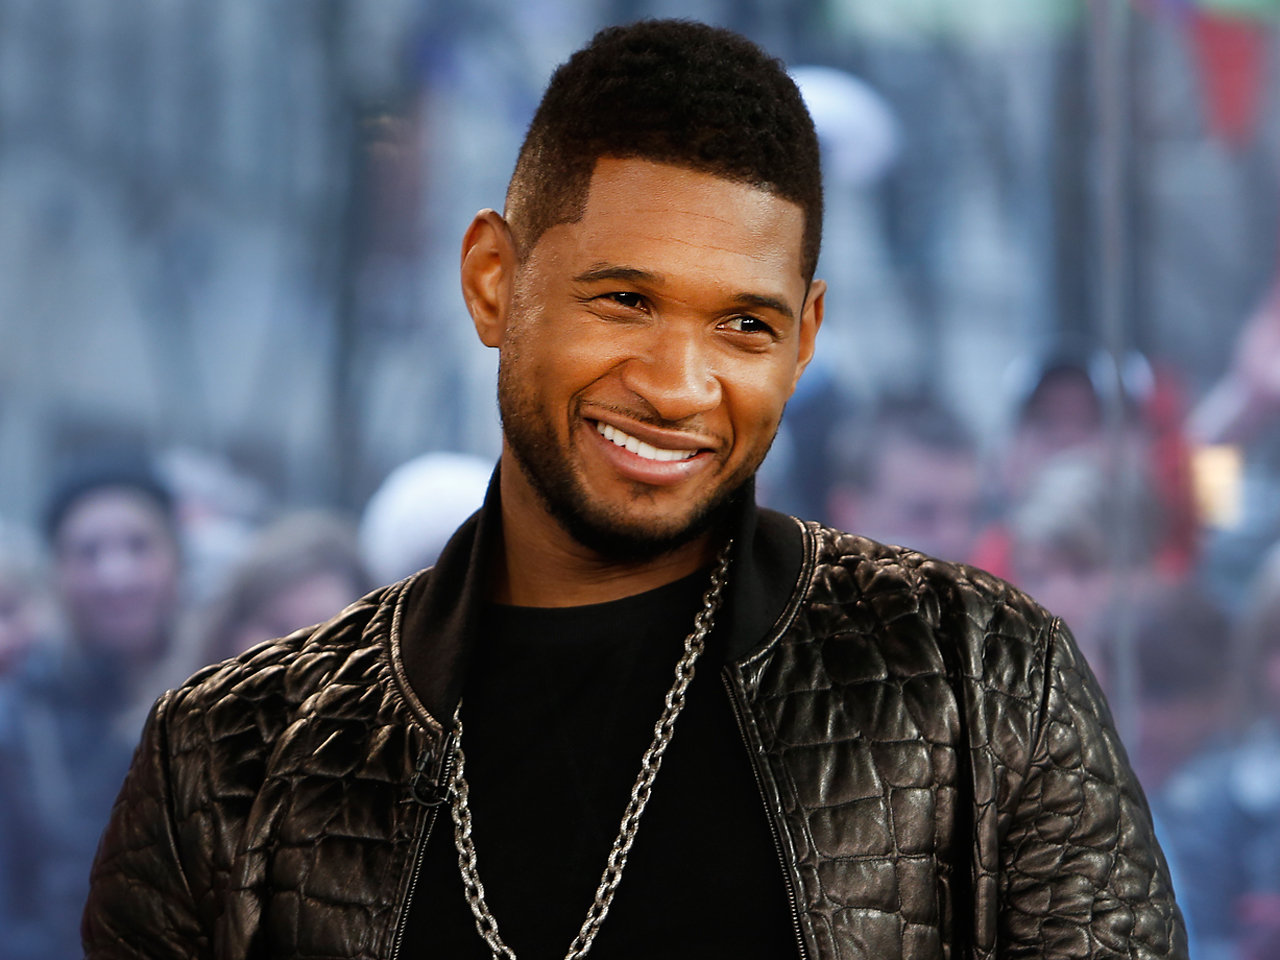 Usher 2013 The Voice What I Wore TODAY: Ush...